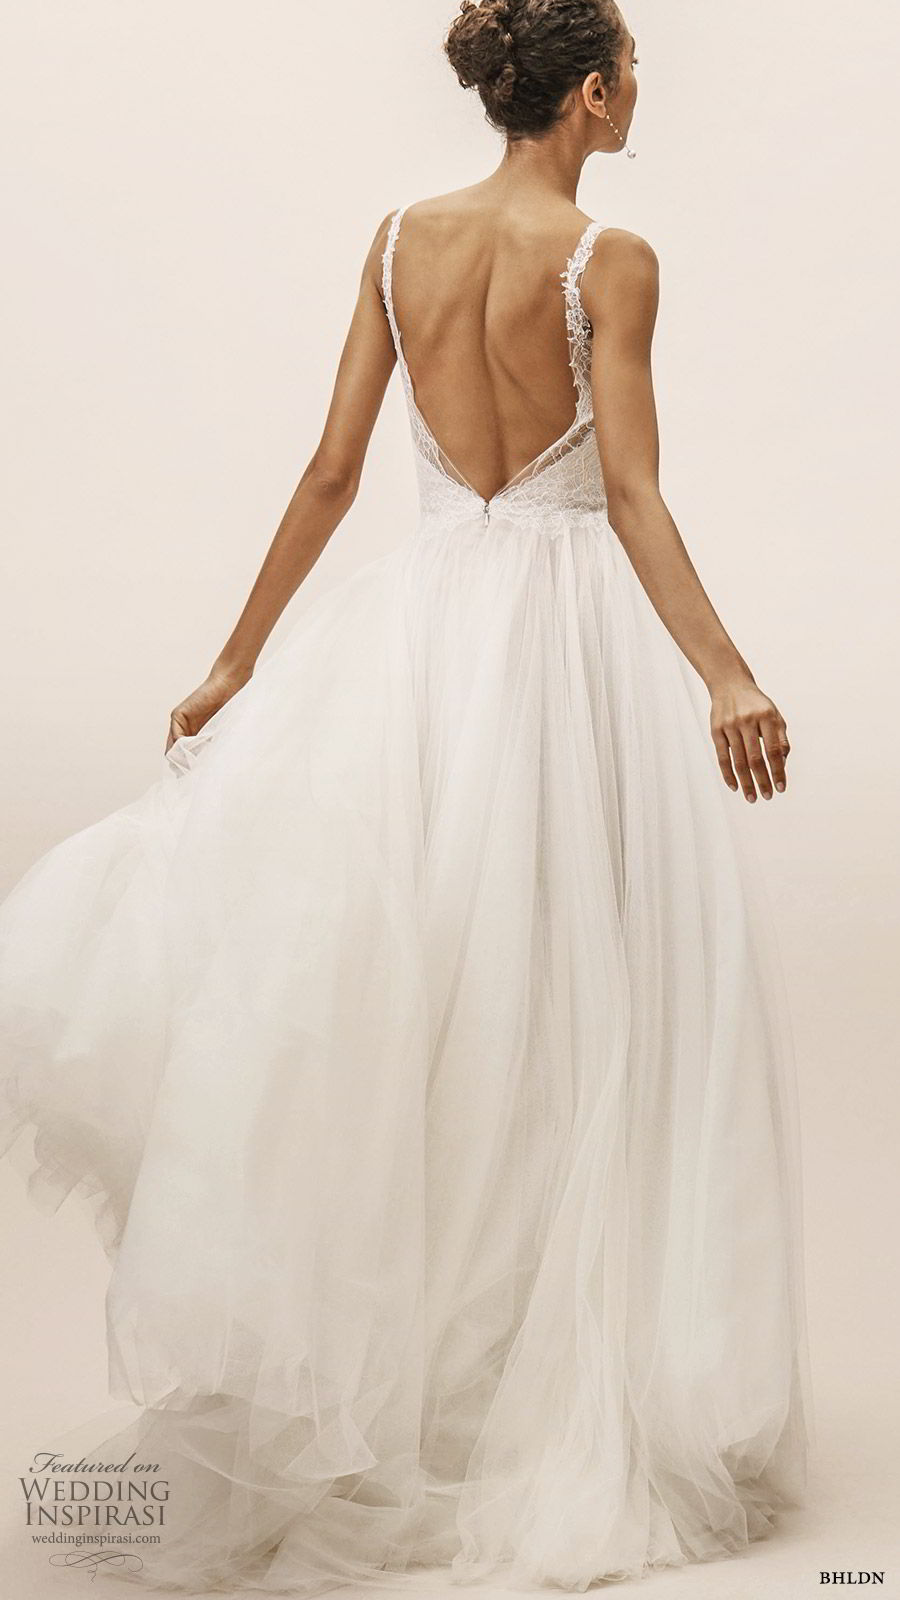 bhldn spring 2019 bridal sleeveless plunging v neckline lace bodice a line ball gown wedding dress low back sweep train romantic (8) bv